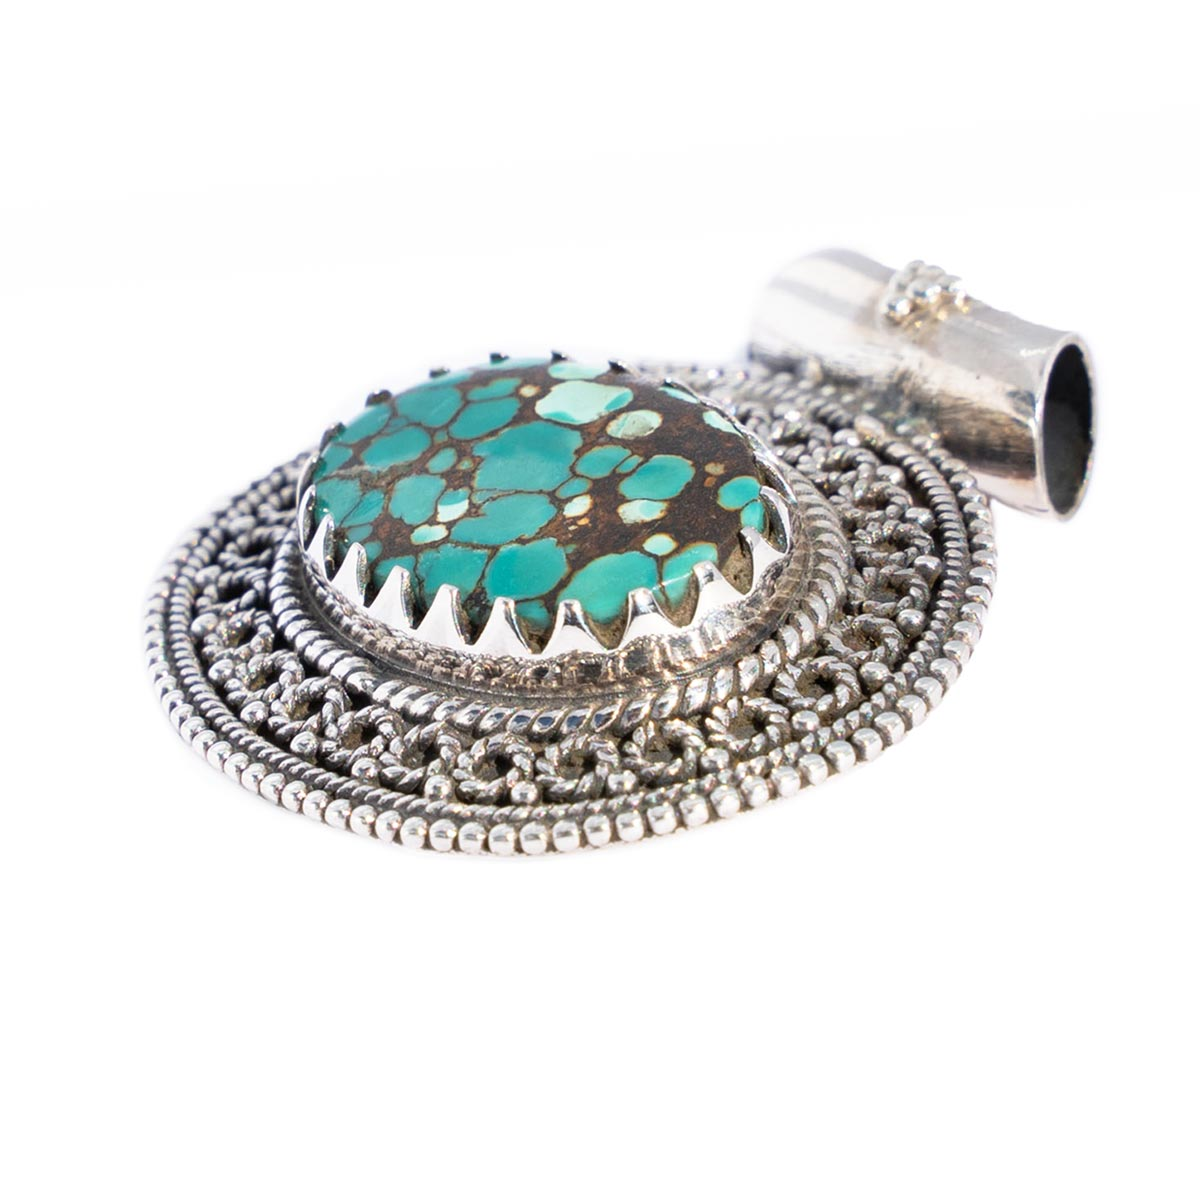 Sri Avinash Infused™ Tibetan Turquoise Pendant in Sterling Silver - Love & Compassion Infusion